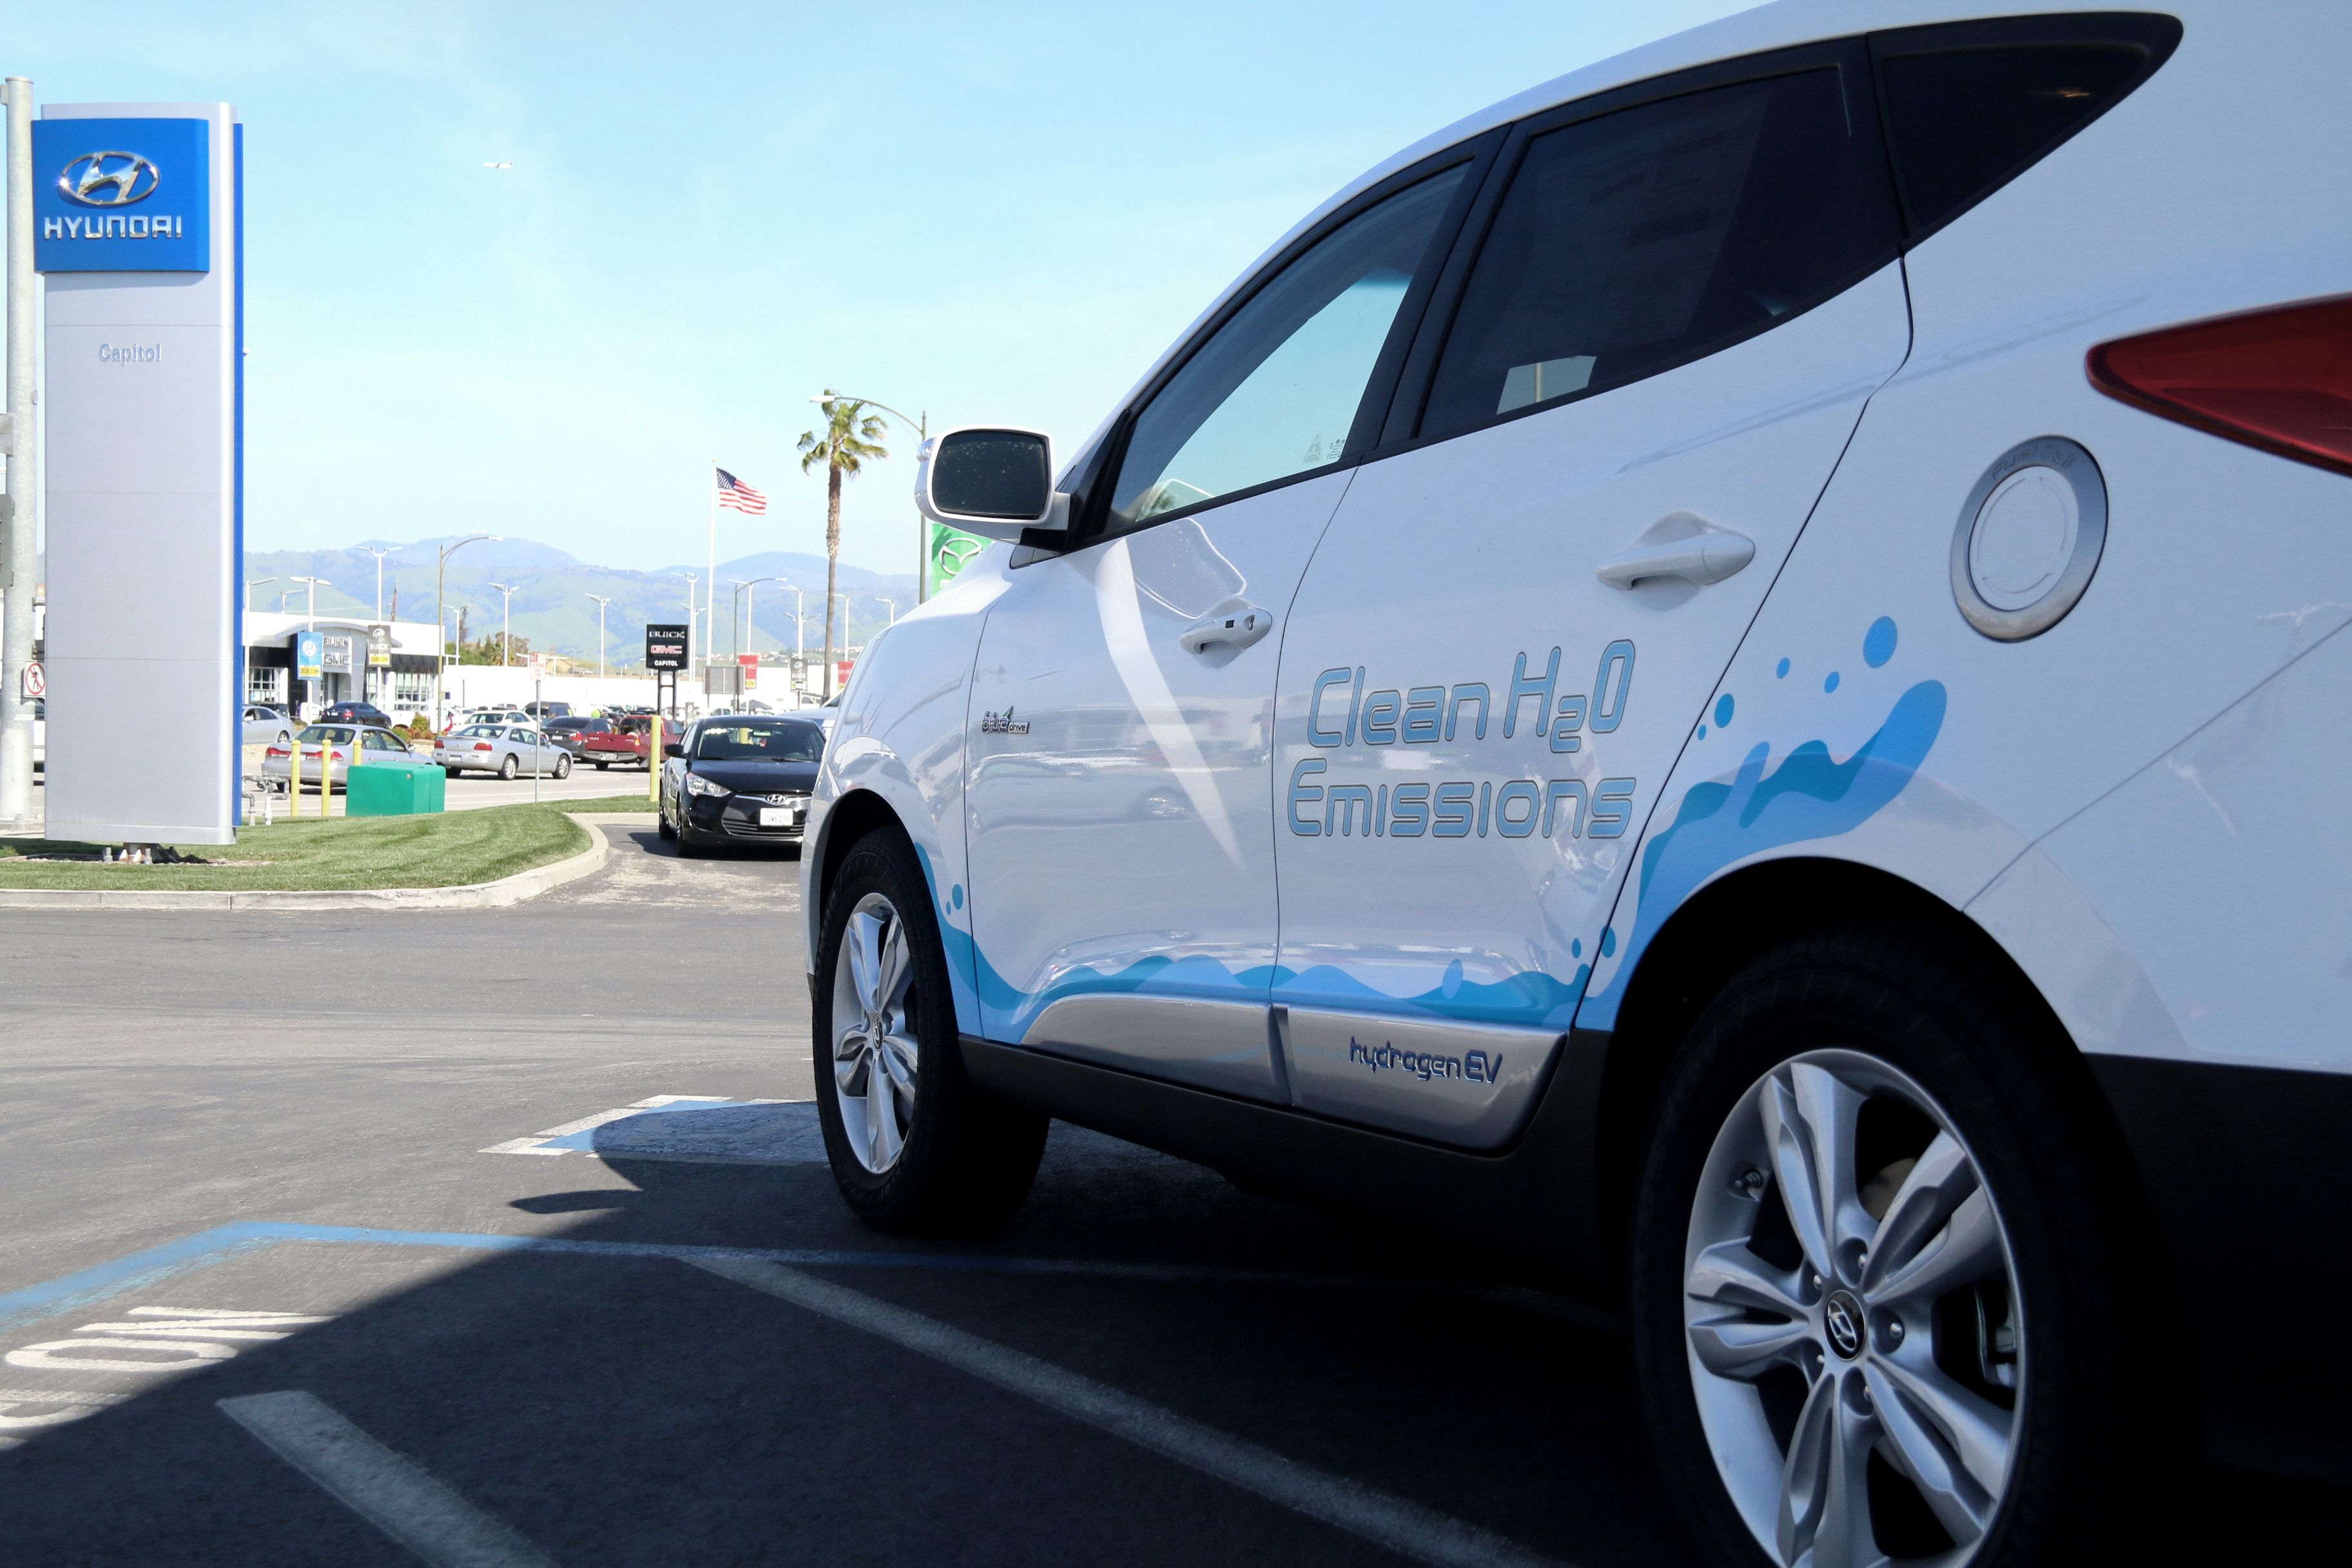 ... Just Became The 5th Qualified Dealer For Hyundaiu0027s Zero Emissions  #Tucson #Fuel Cell #hydrogen #electric Vehicle Today. #Hyundai #BeHappy  #DGDG #BayArea